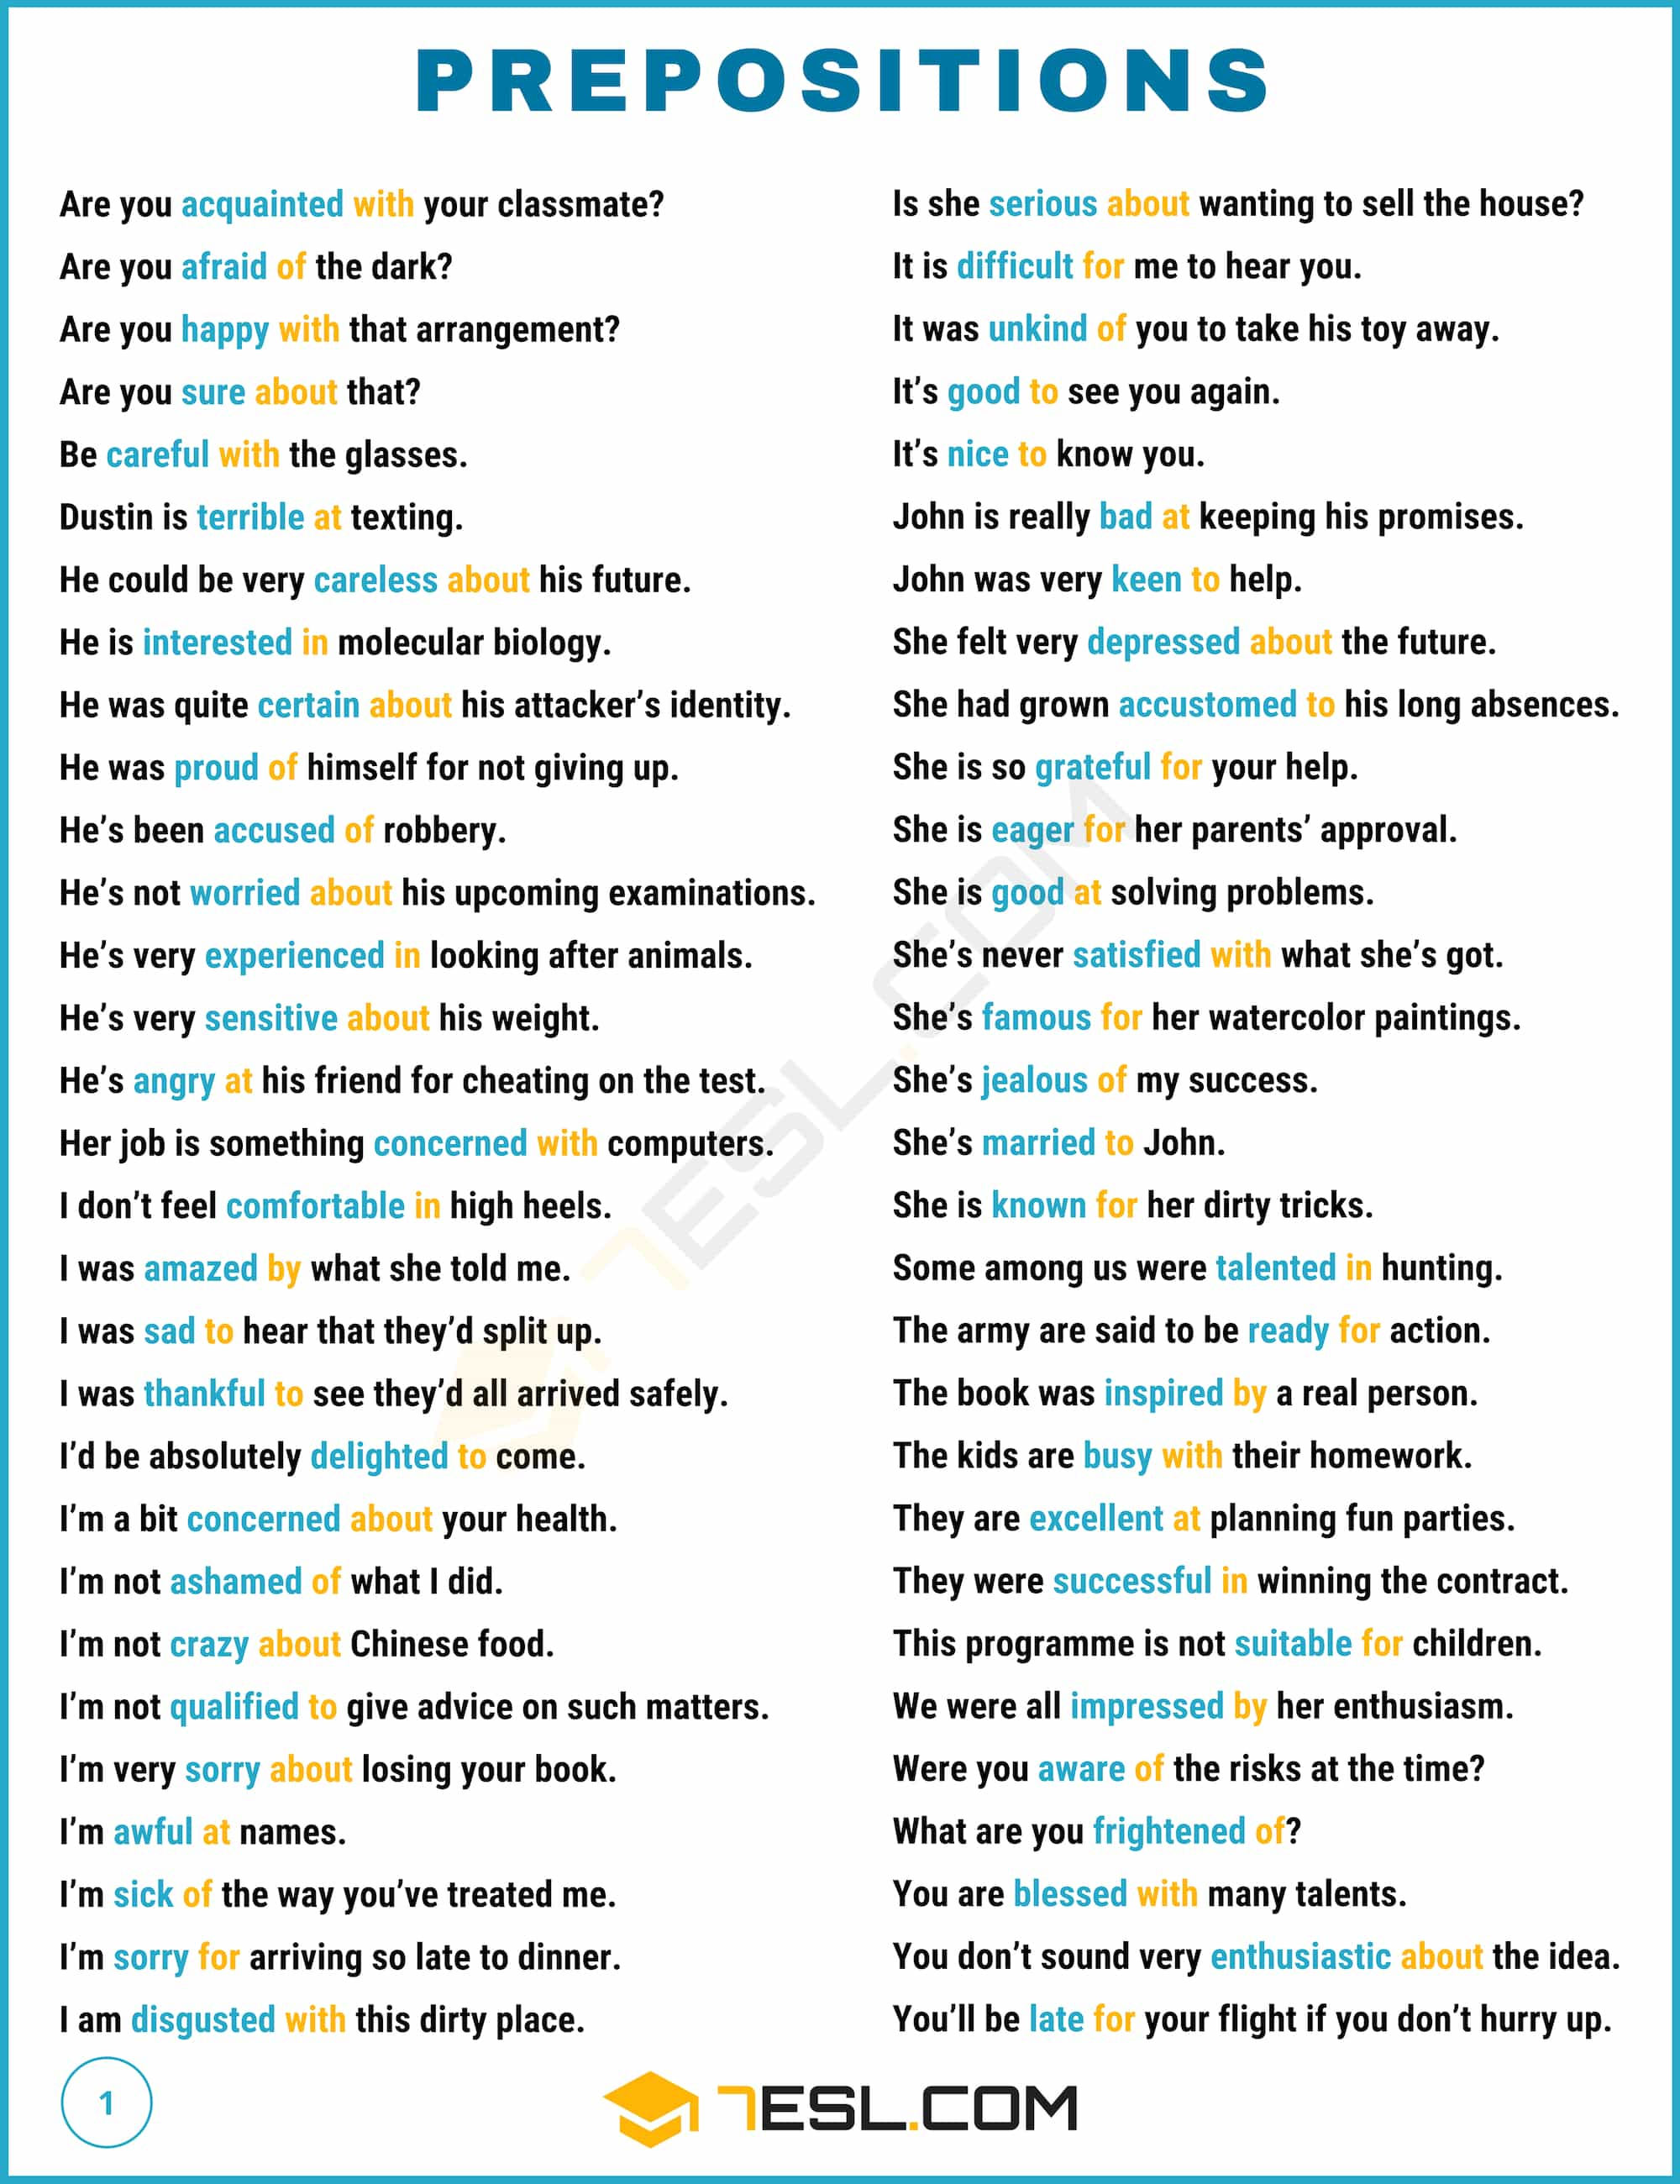 photo about List of Prepositions Printable titled Prepositions: What Is A Preposition? Insightful Listing Illustrations